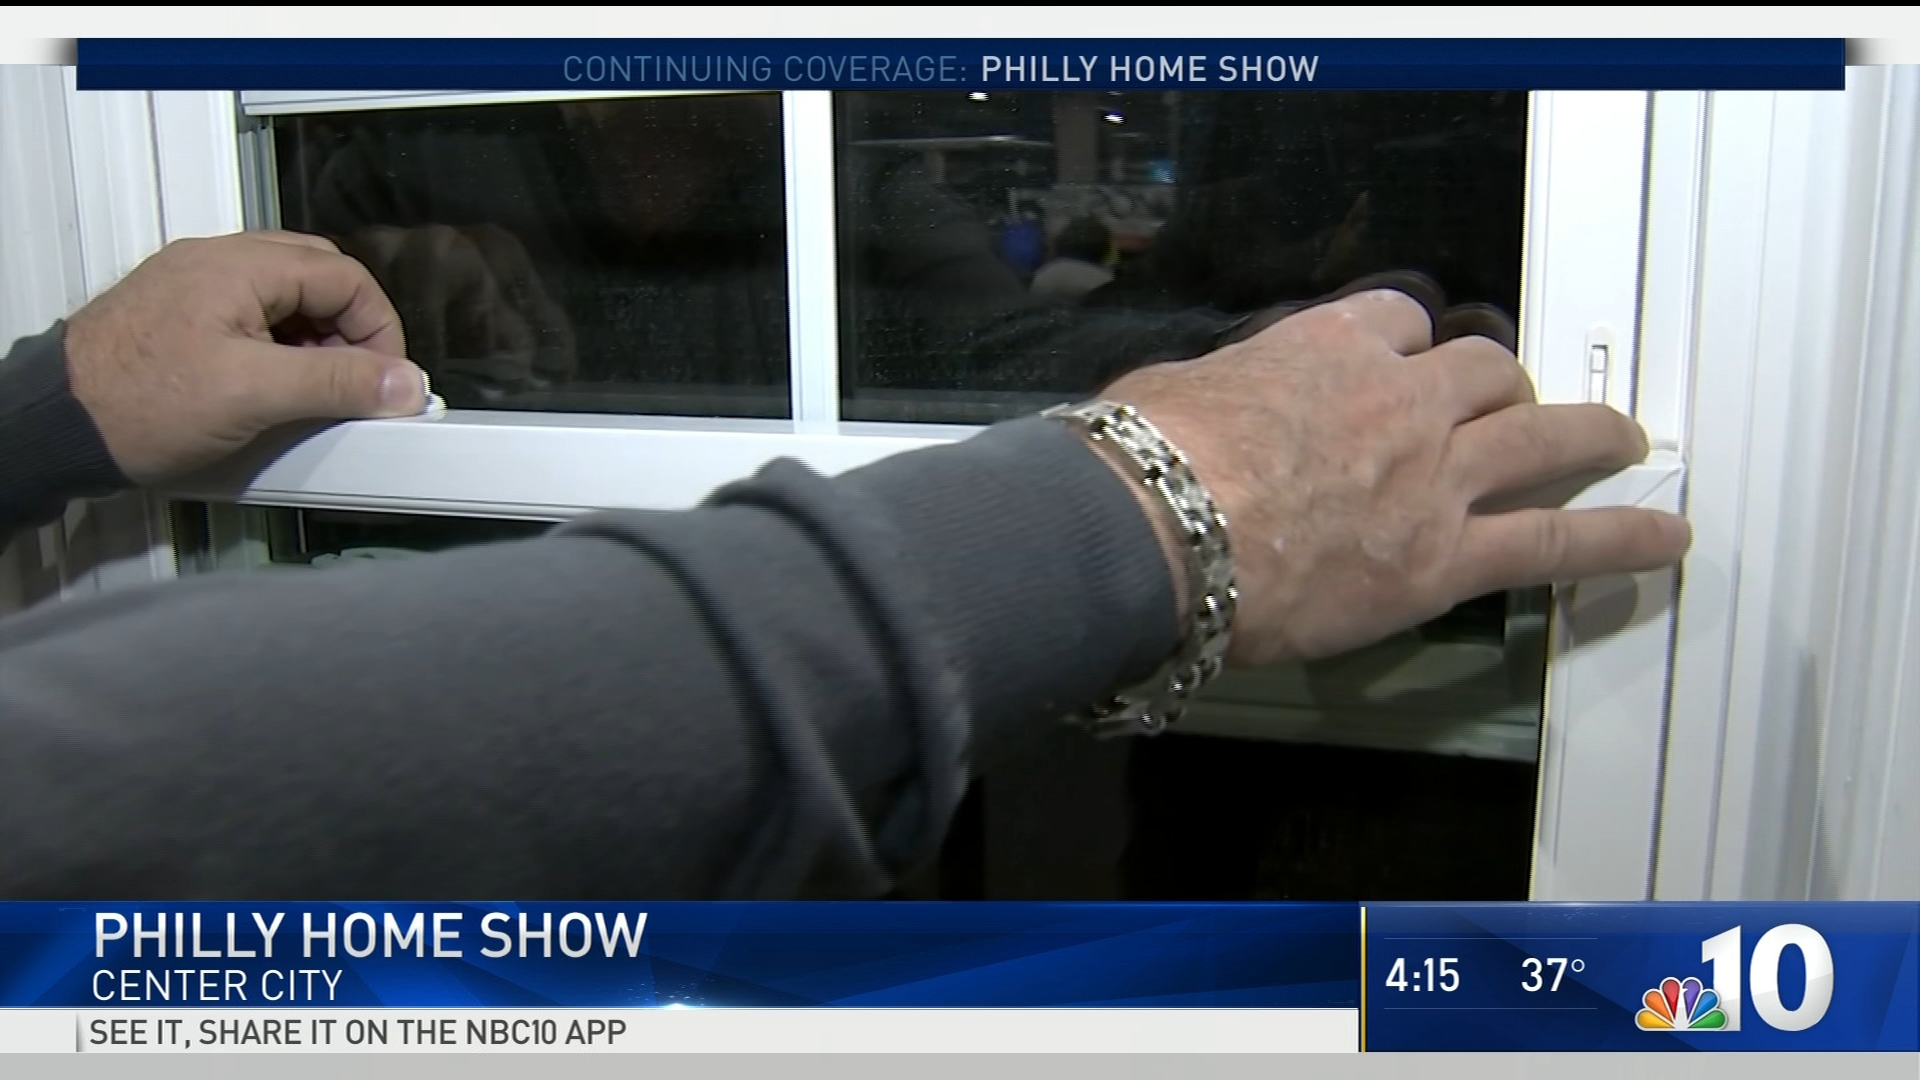 Weather-Proofing: What We Learned at the Philly Home Show